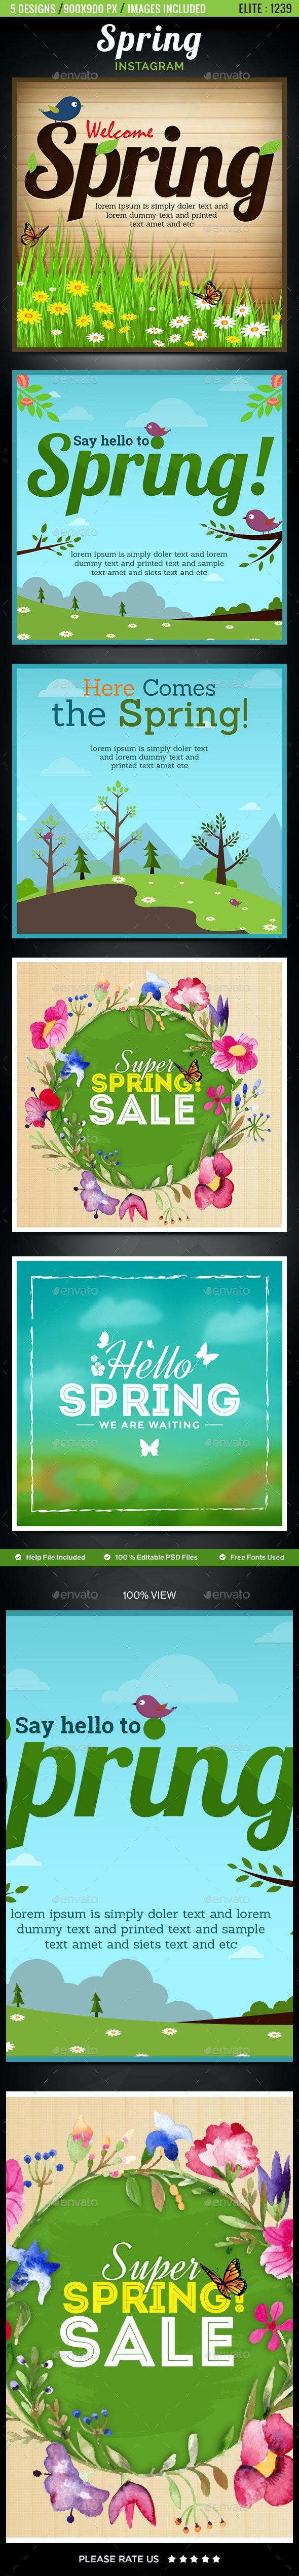 Spring Instagram Templates - 5 Designs - Images Included - Social Media Web Elements